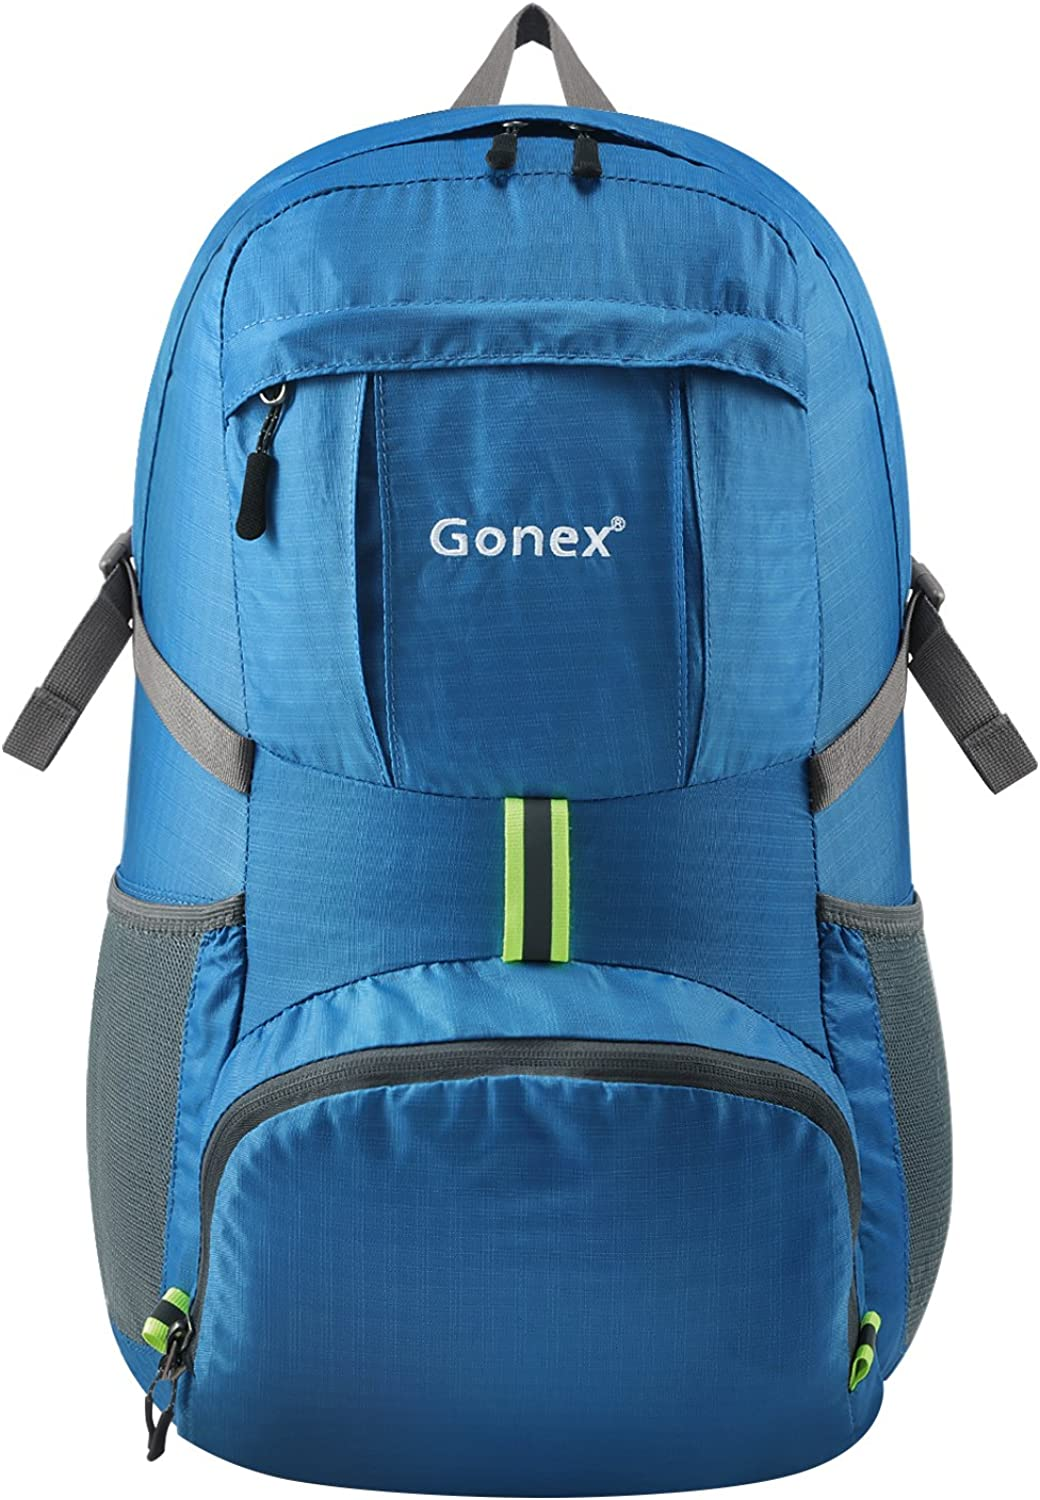 Packable Handy Backpack for Outdoor Cycling Hiking Gonex 35L Lightweight Travel Daypack